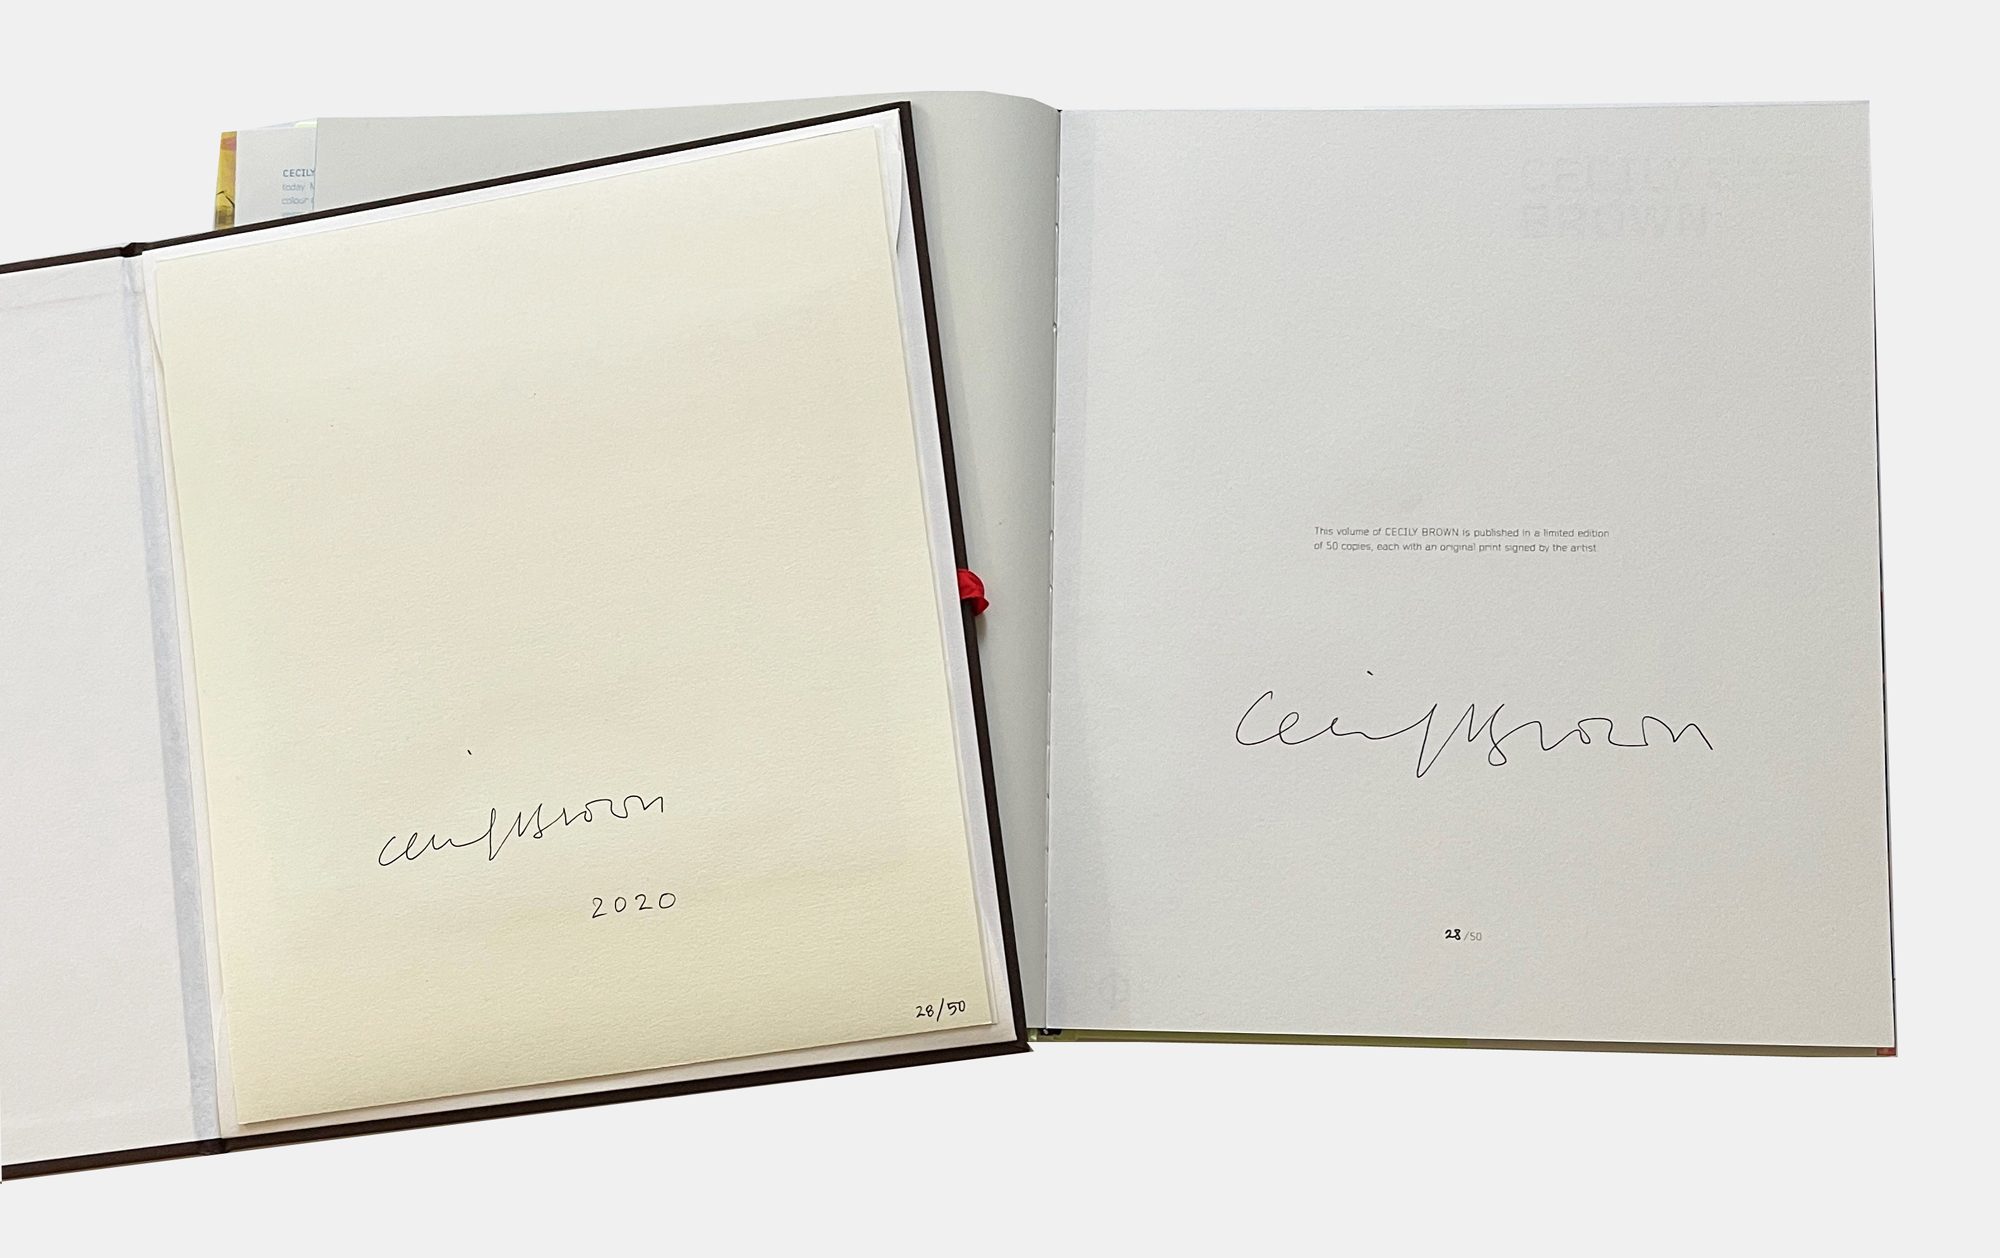 Cecily Brown's signature on the reverse of the edition and in the accompanying Phaidon book